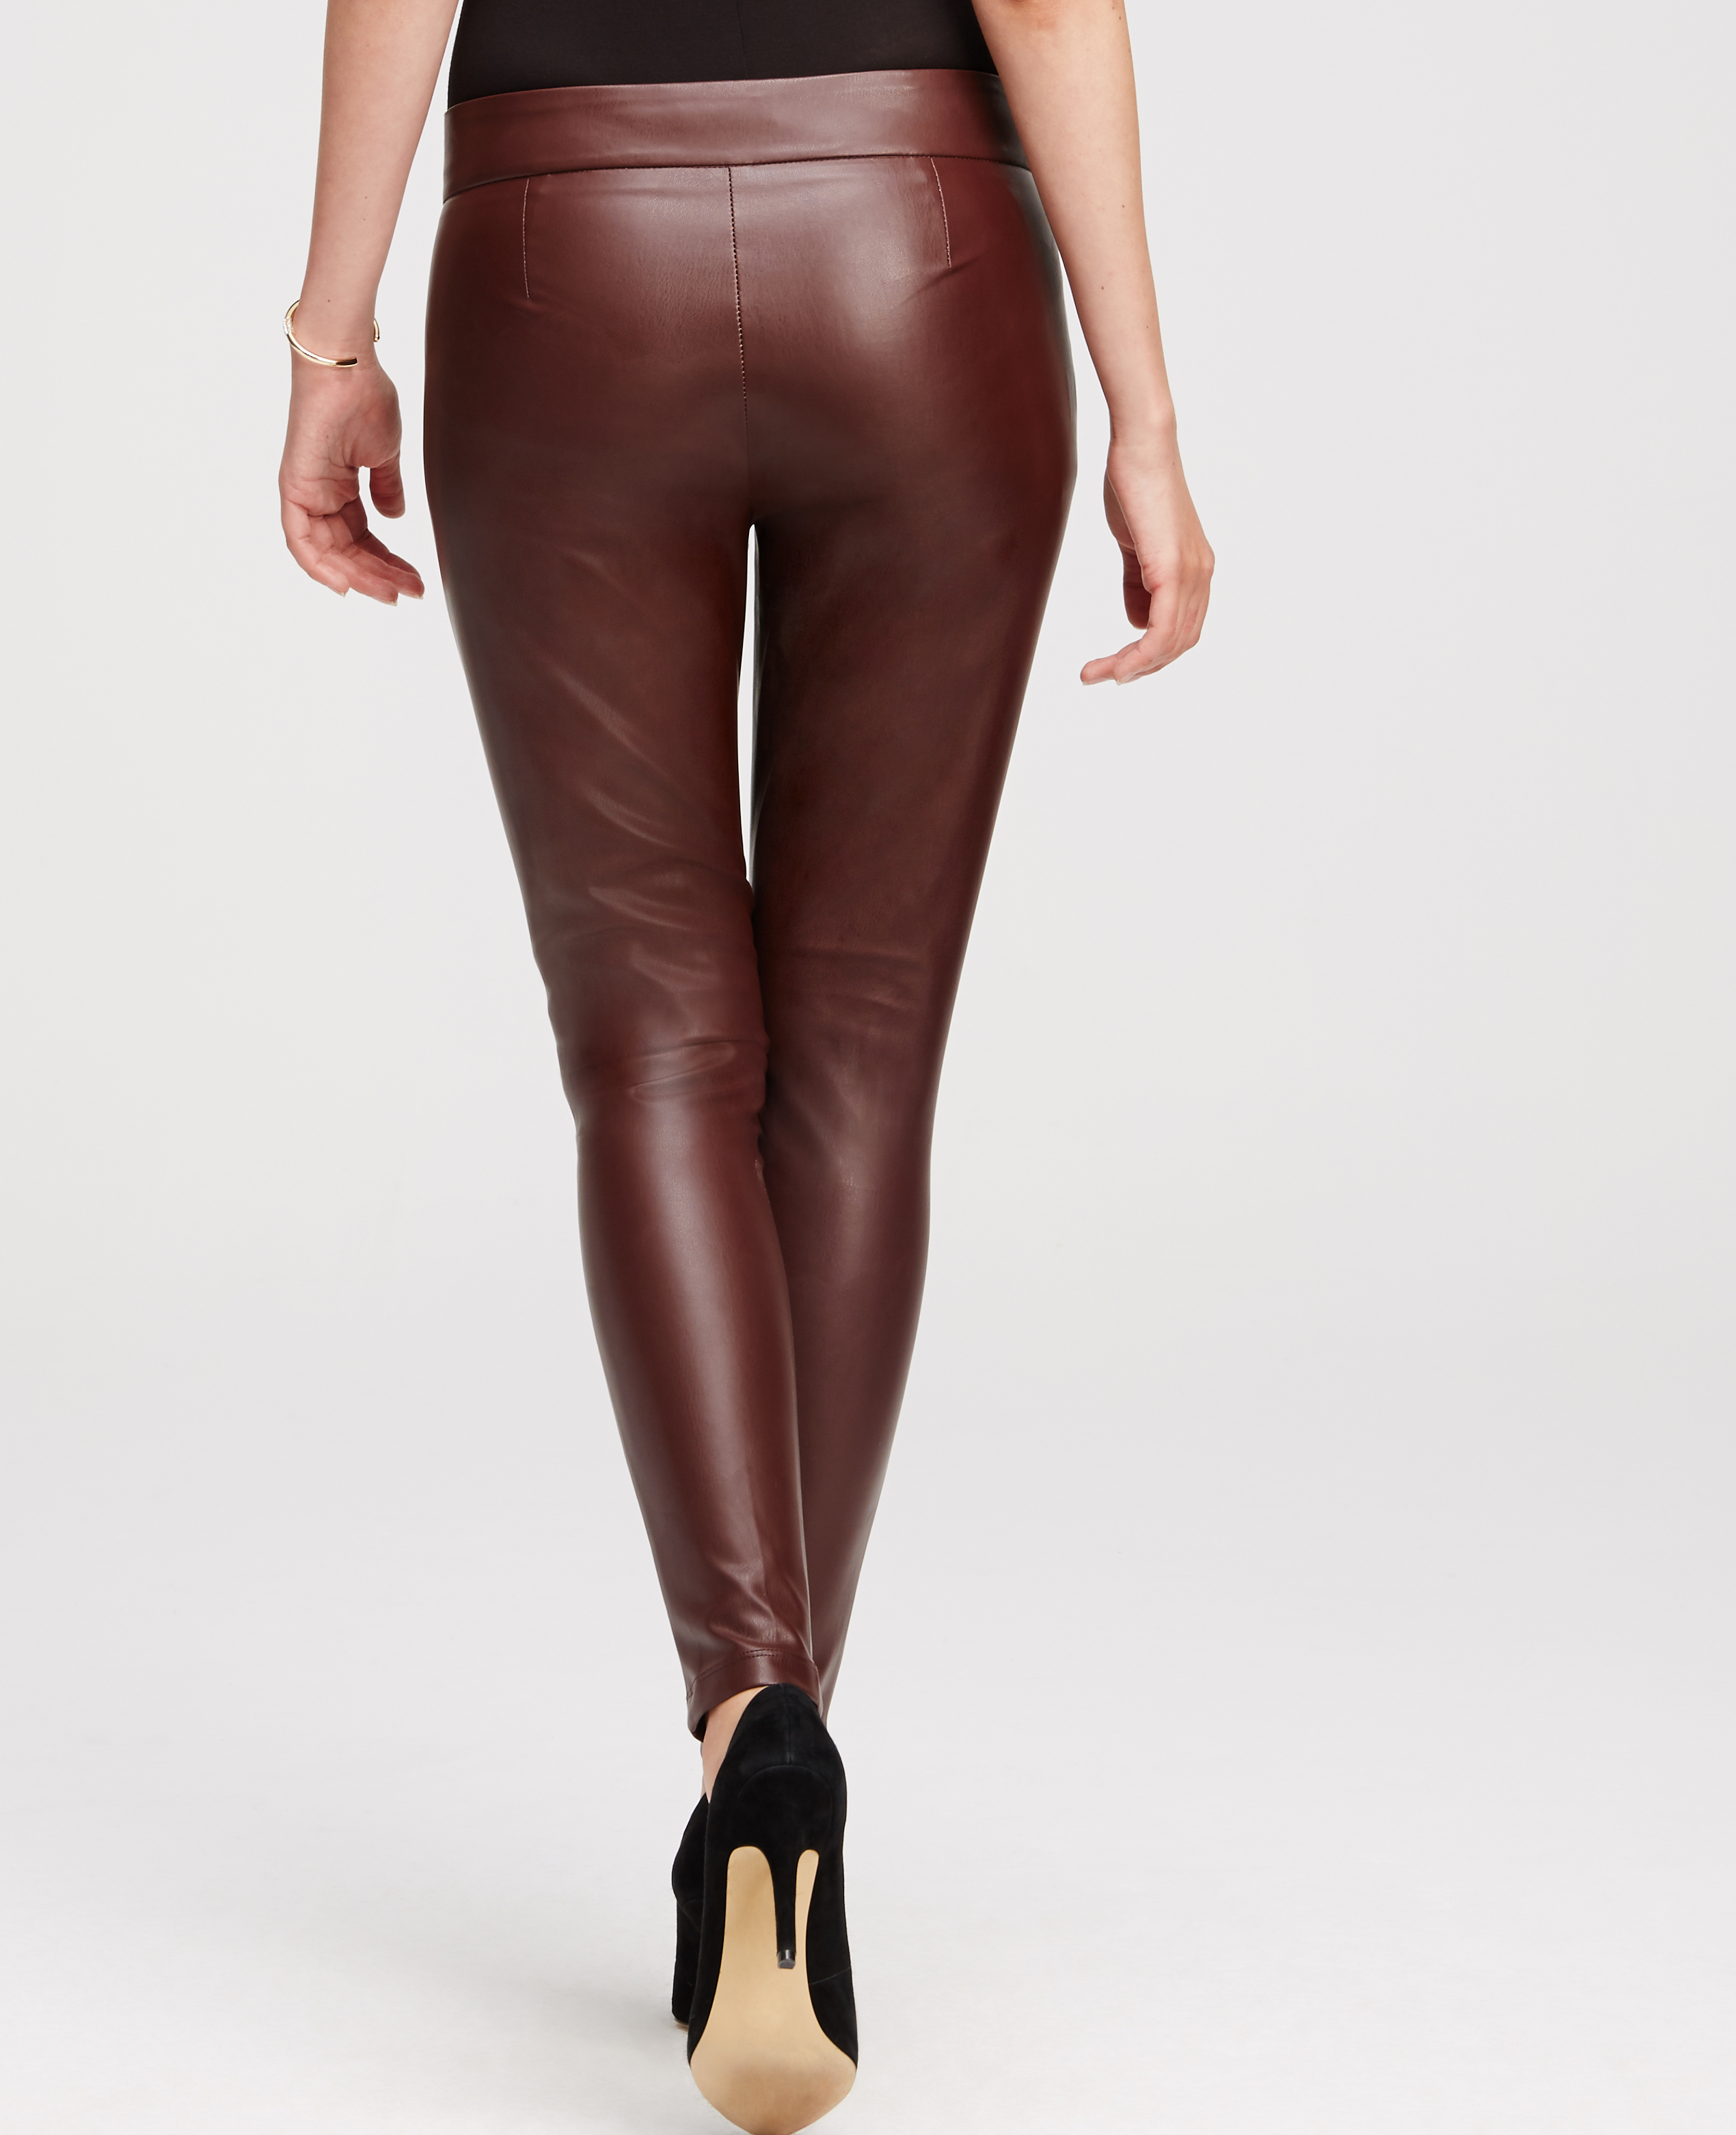 Koral bottoms are made from luxurious materials designed to conceive premium active New Arrivals· Exclusive Offers· Best Sellers· Street Style.